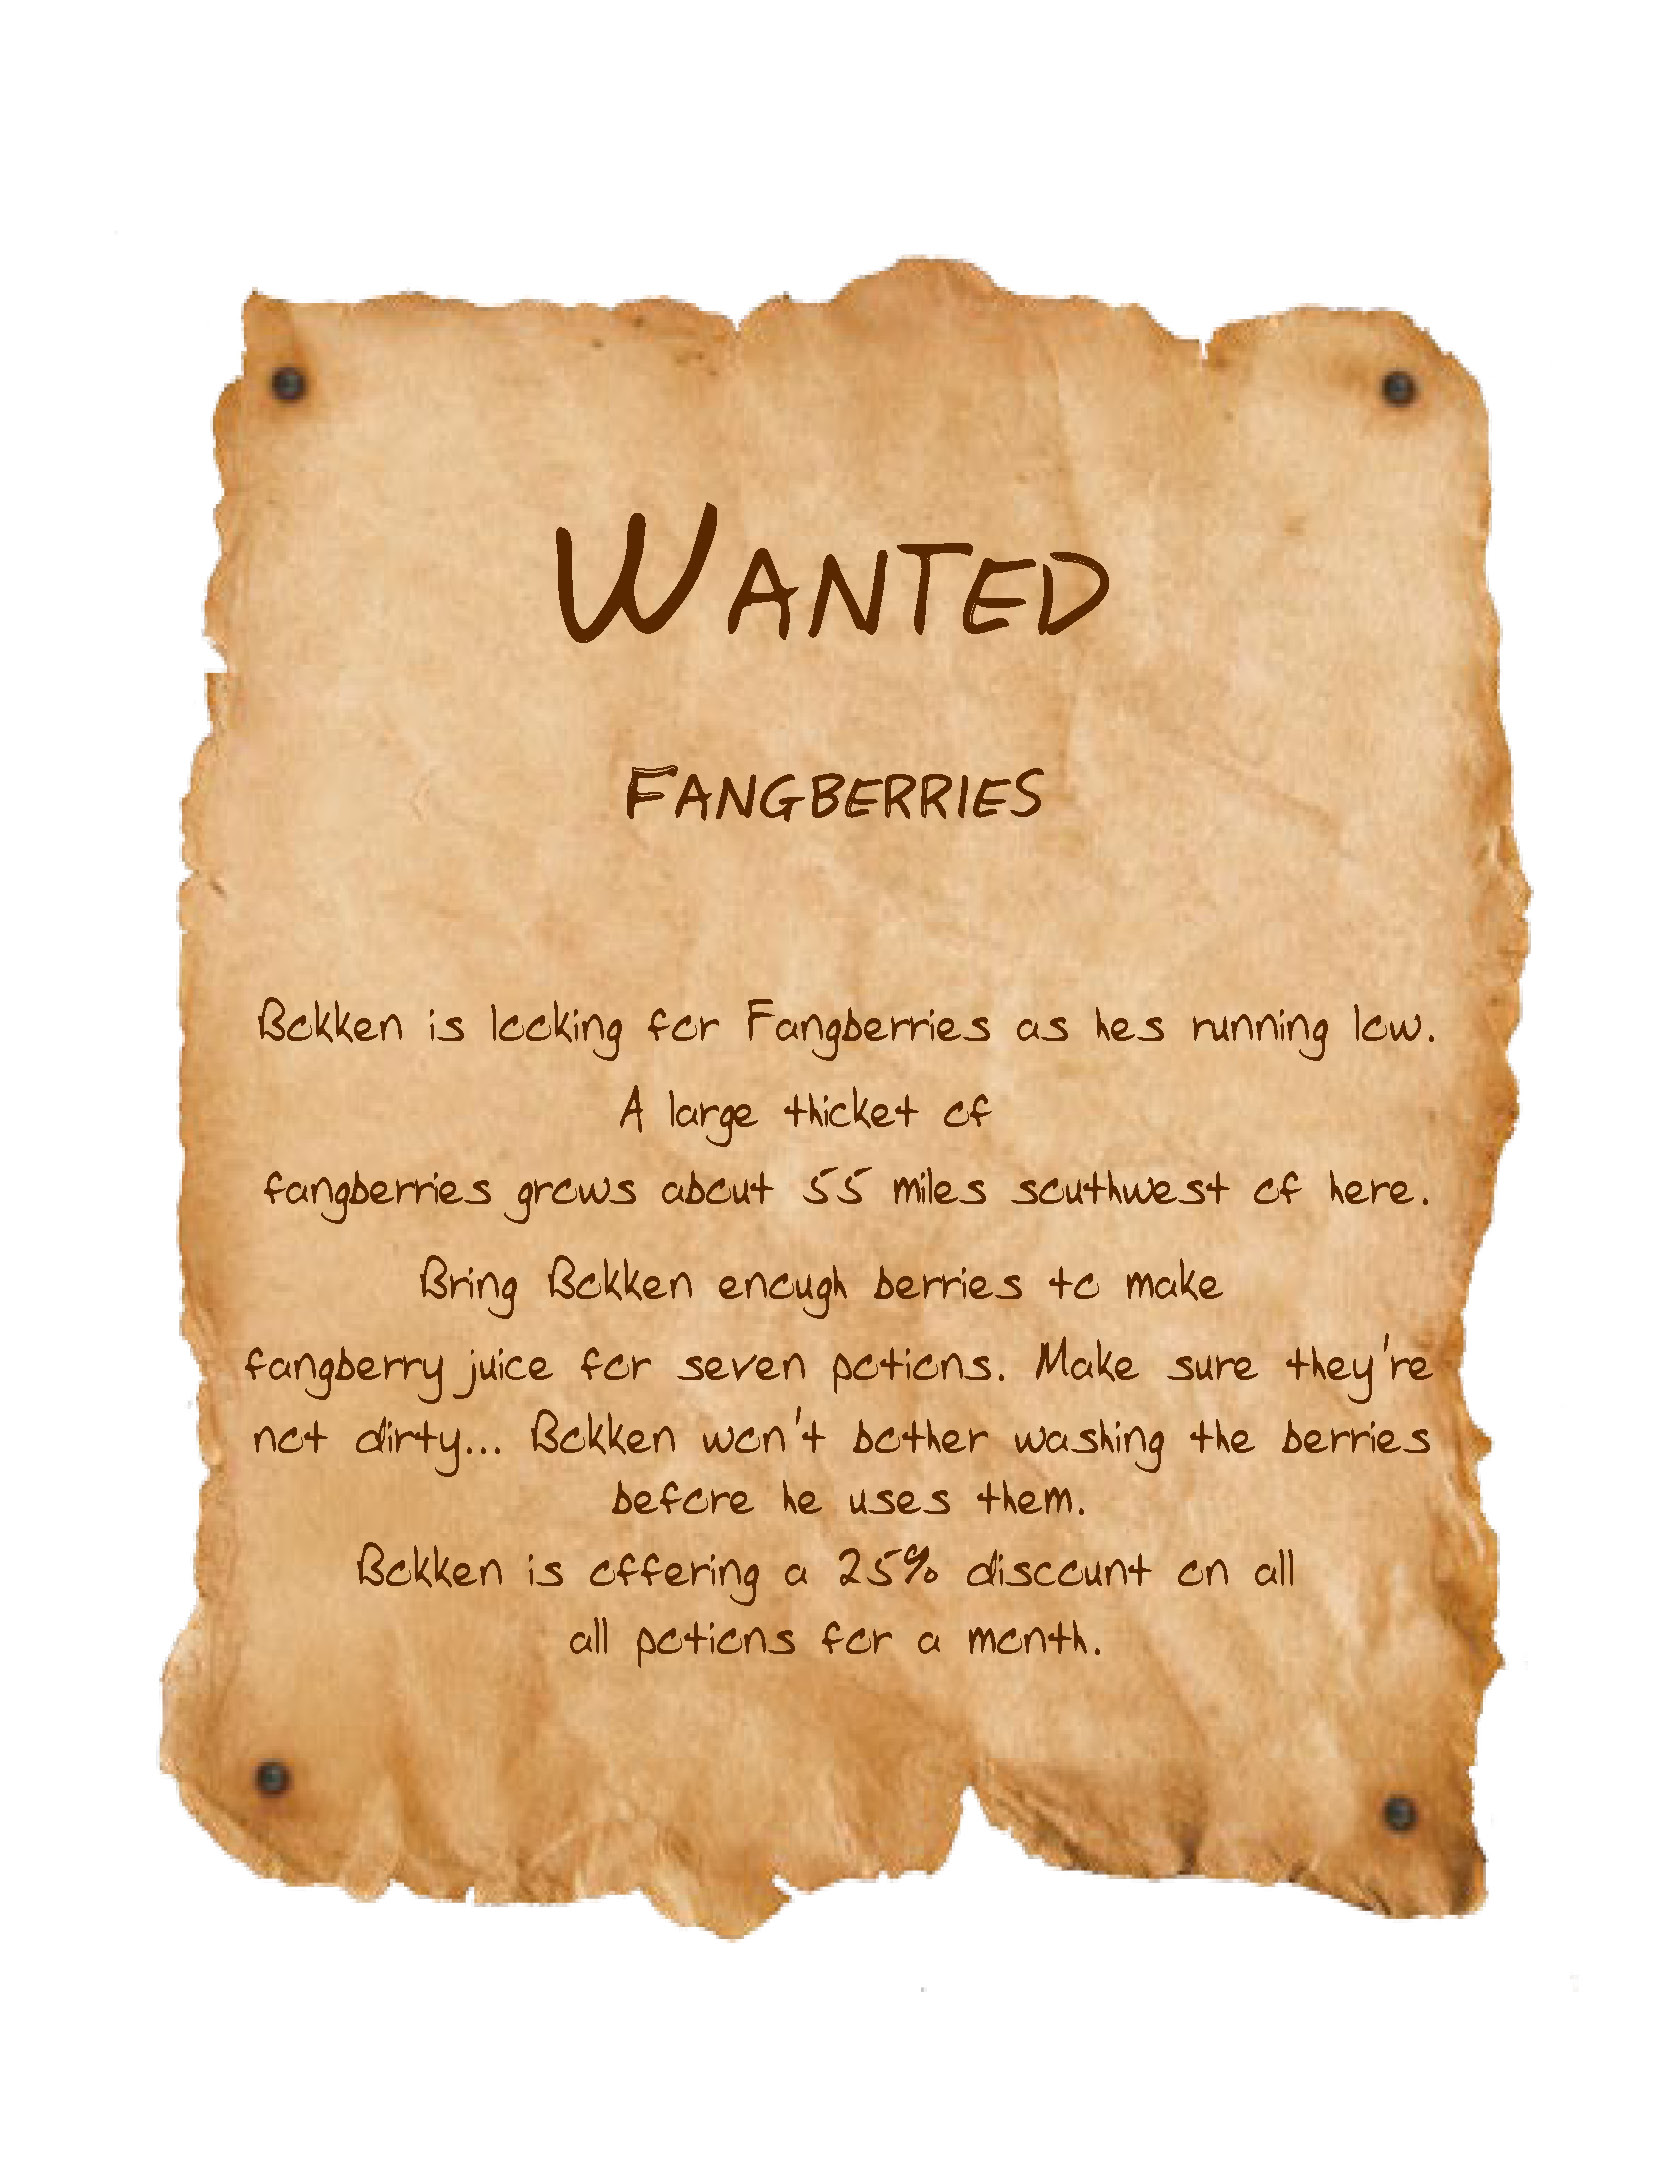 wanted_fangberries.jpg